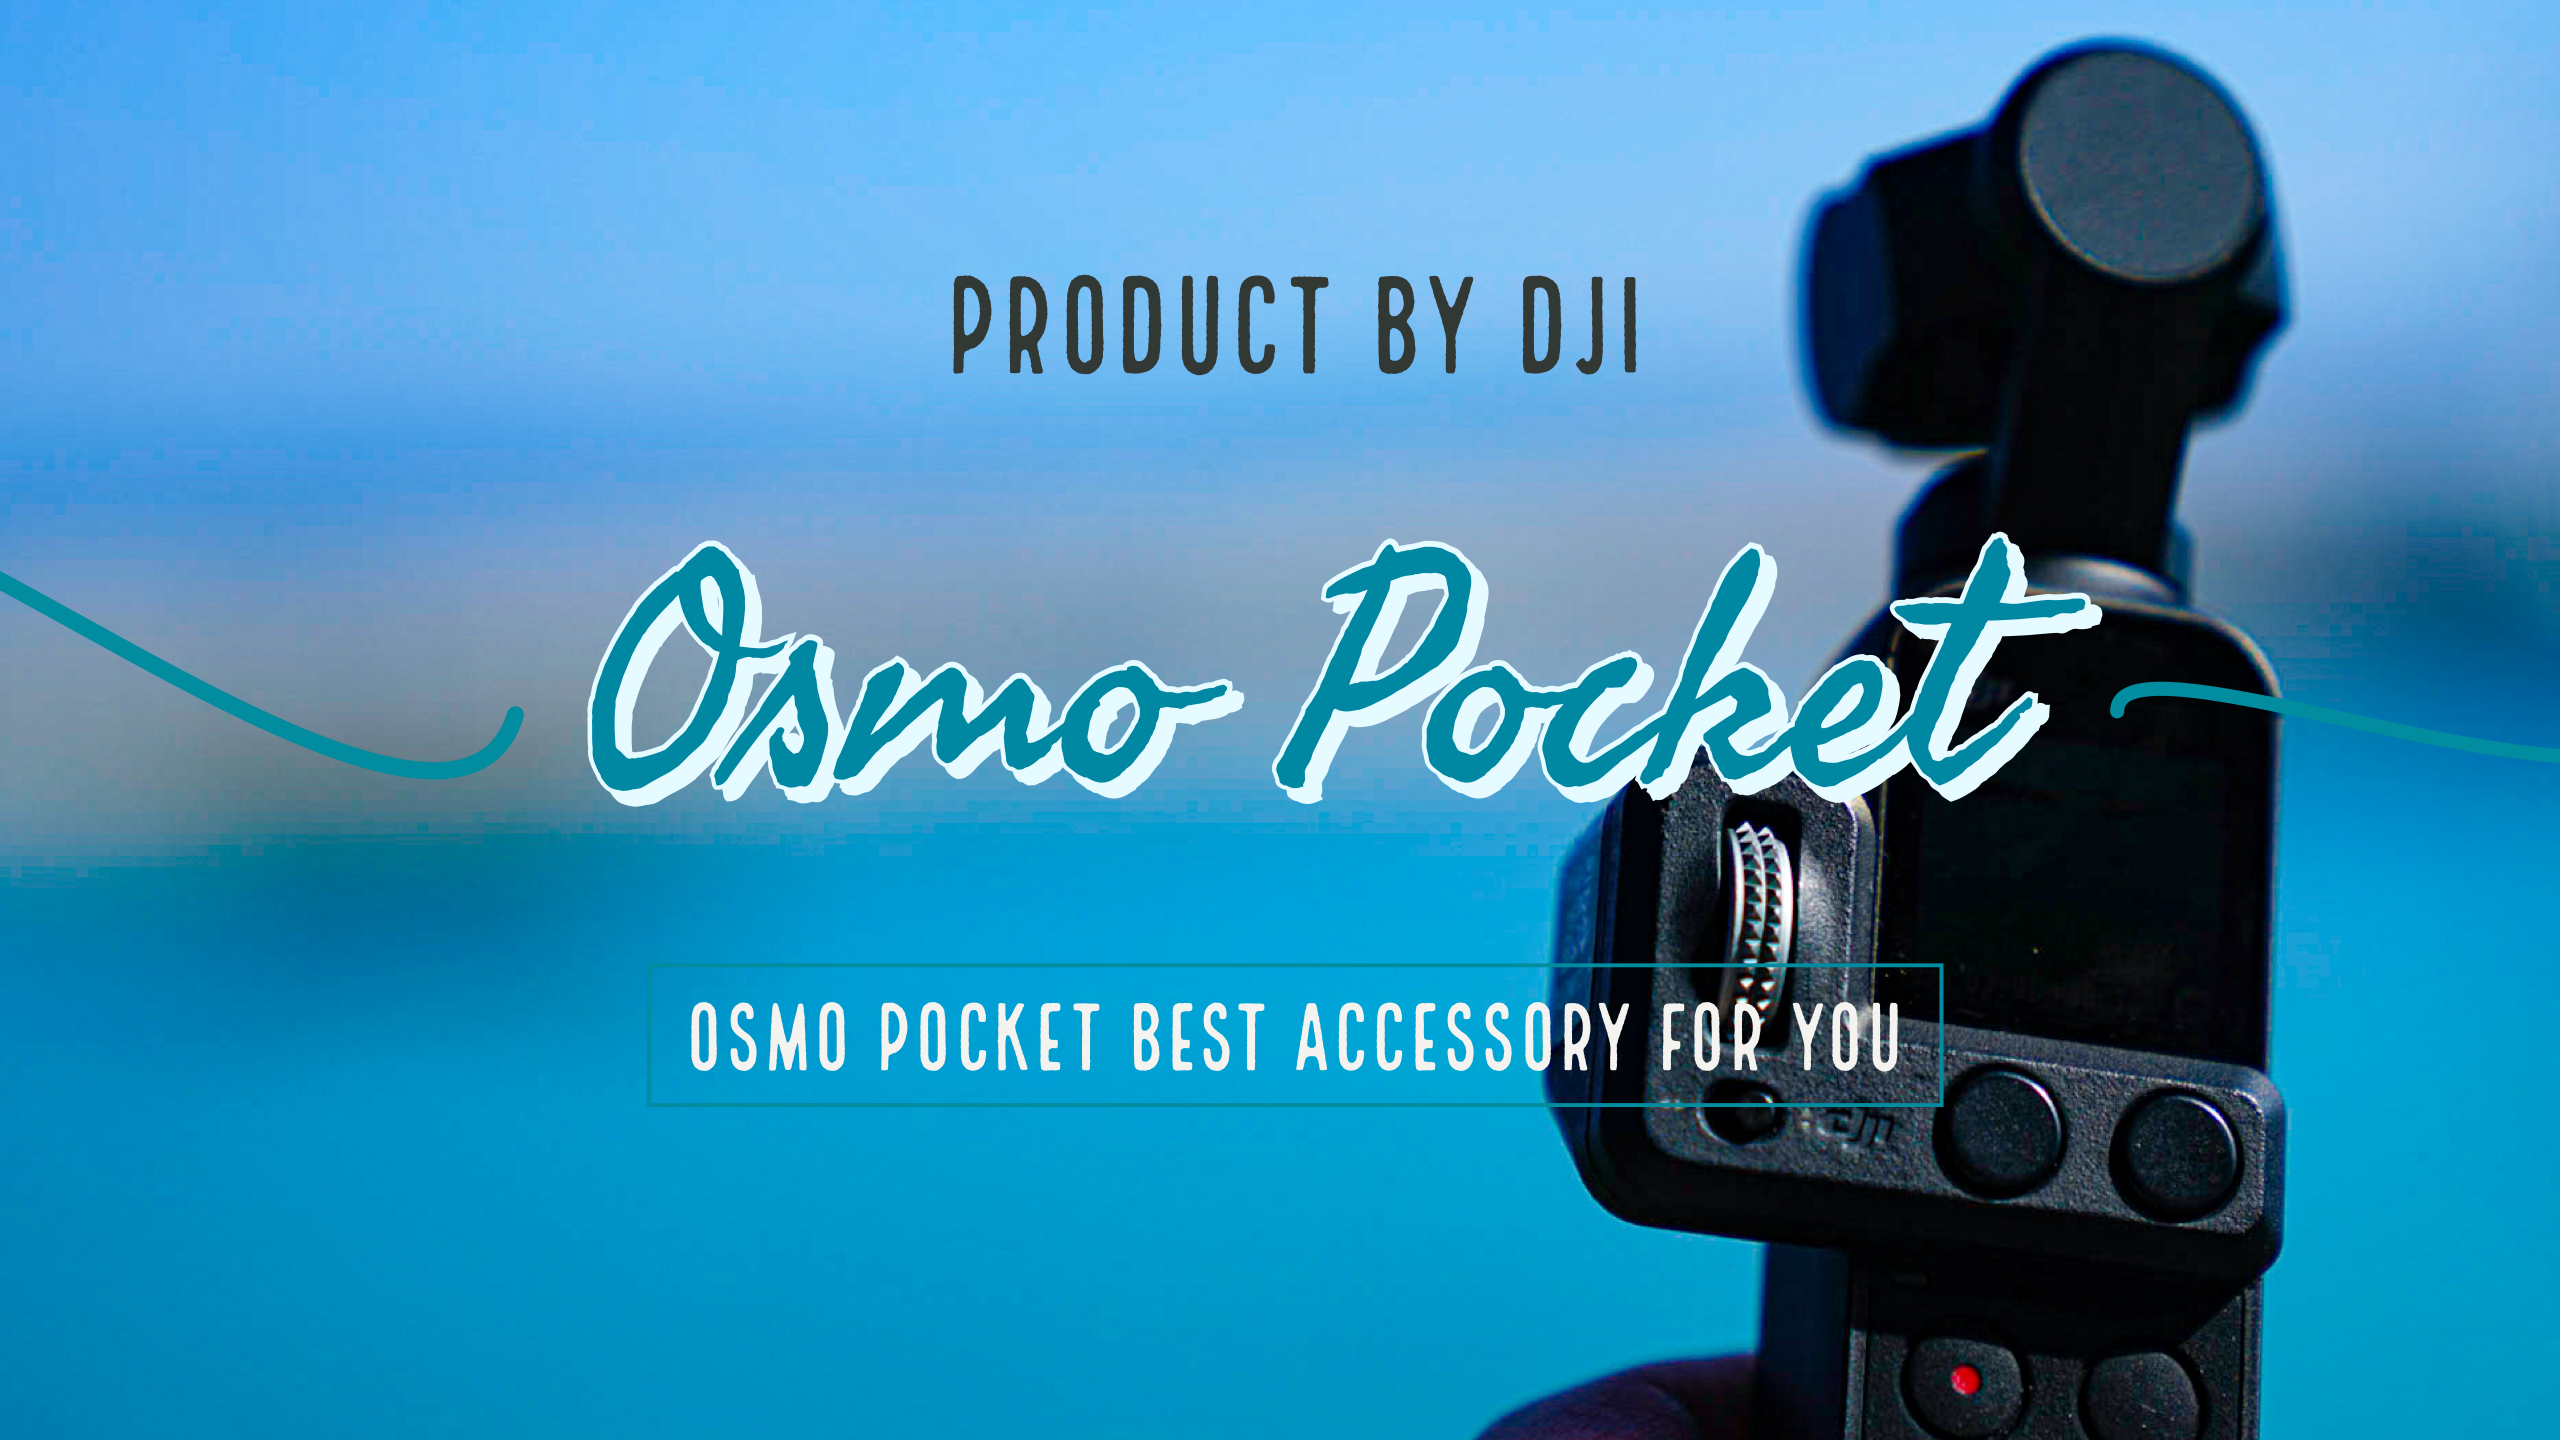 Osmo Pocket BEST ACCESSORY FOR TRAVEL